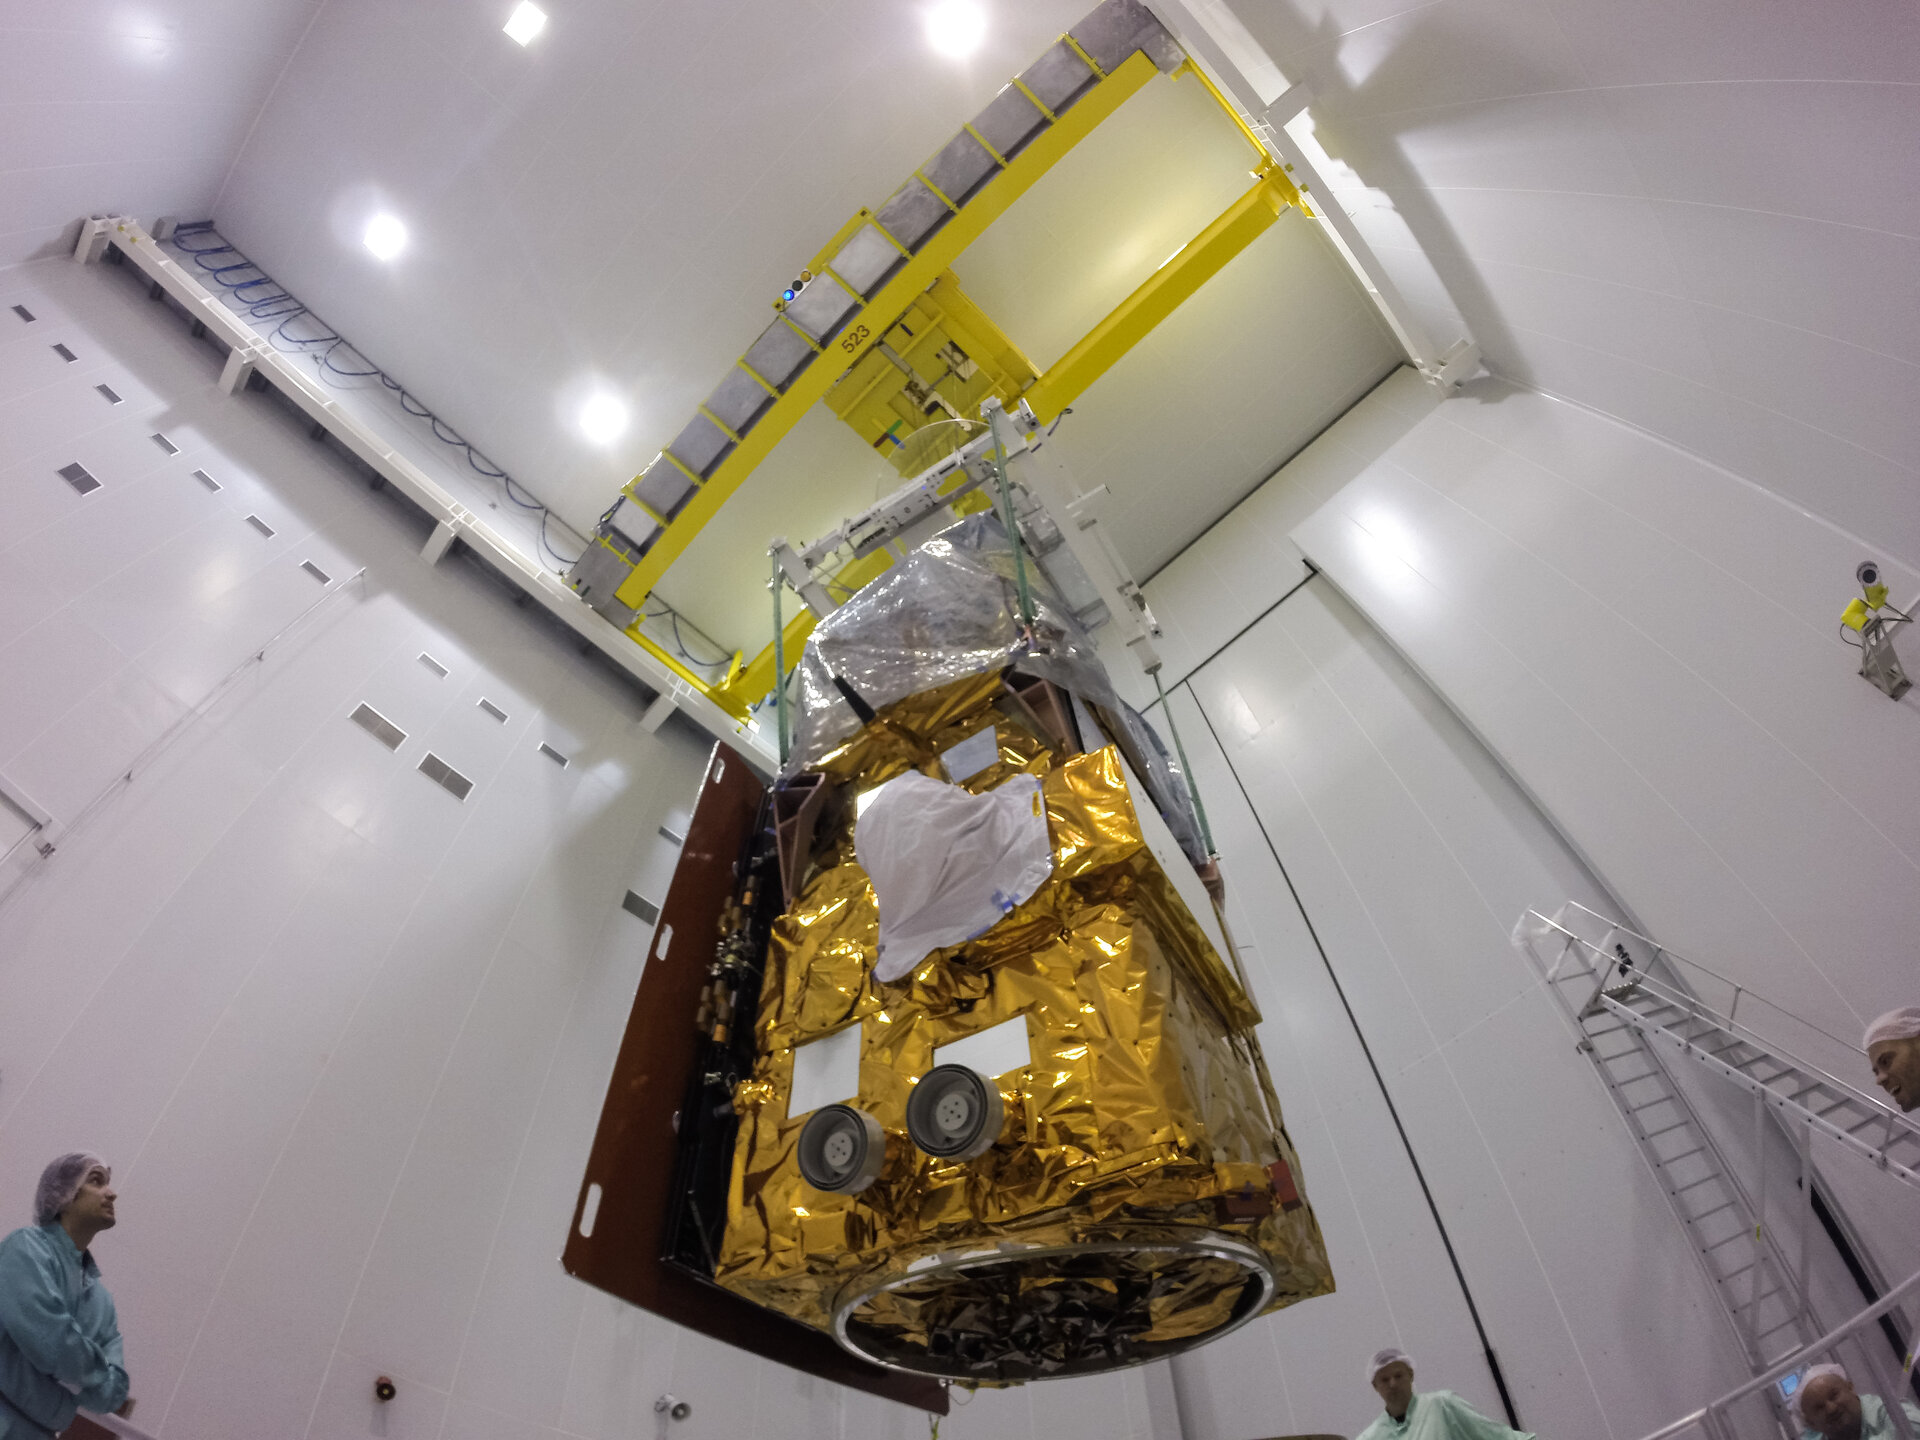 Sentinel-2A during its installation on its payload launcher adapter